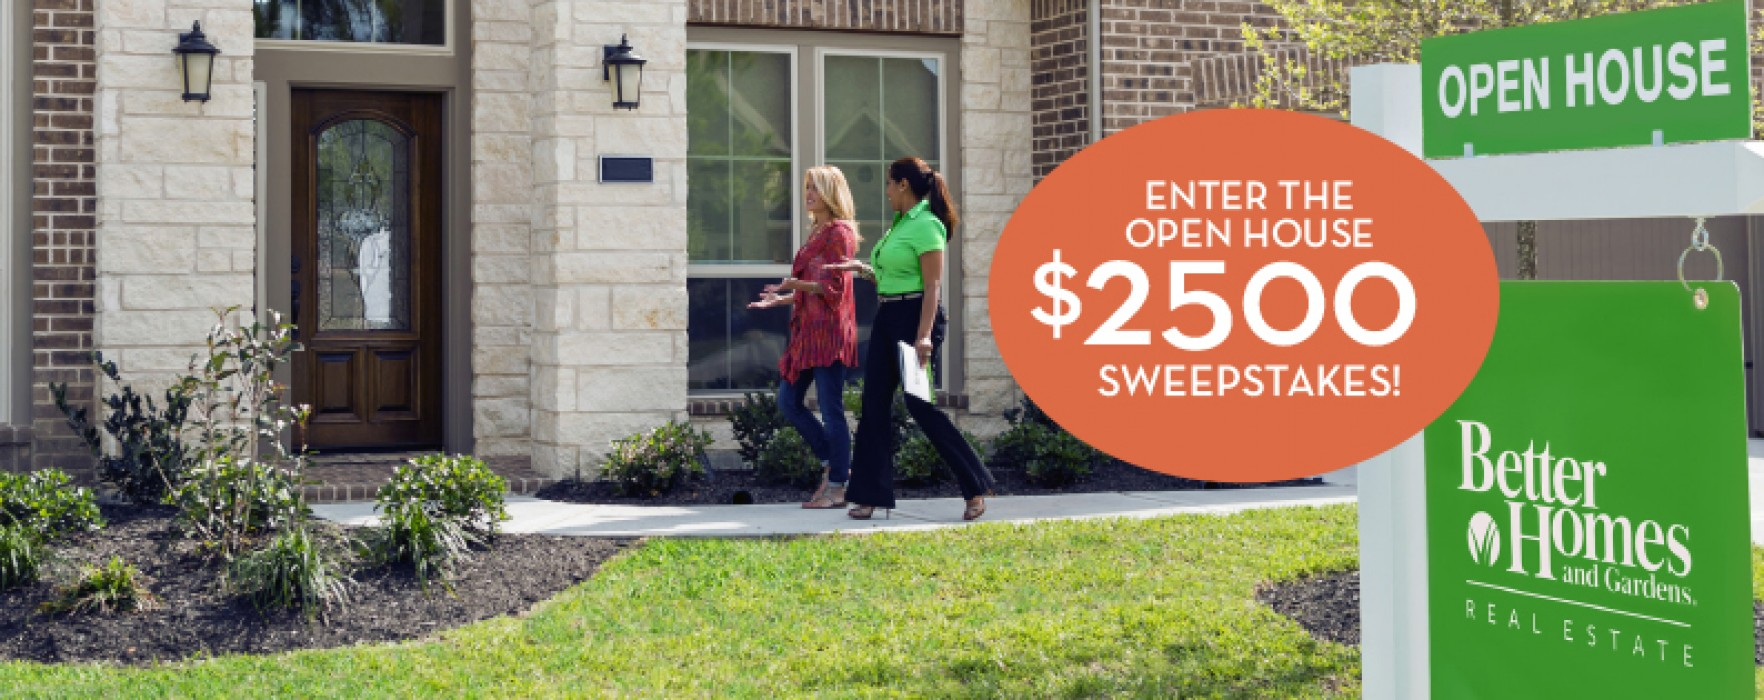 Better Homes And Gardens Sweepstakes >> Better Homes And Gardens Real Estate National Open House Month And